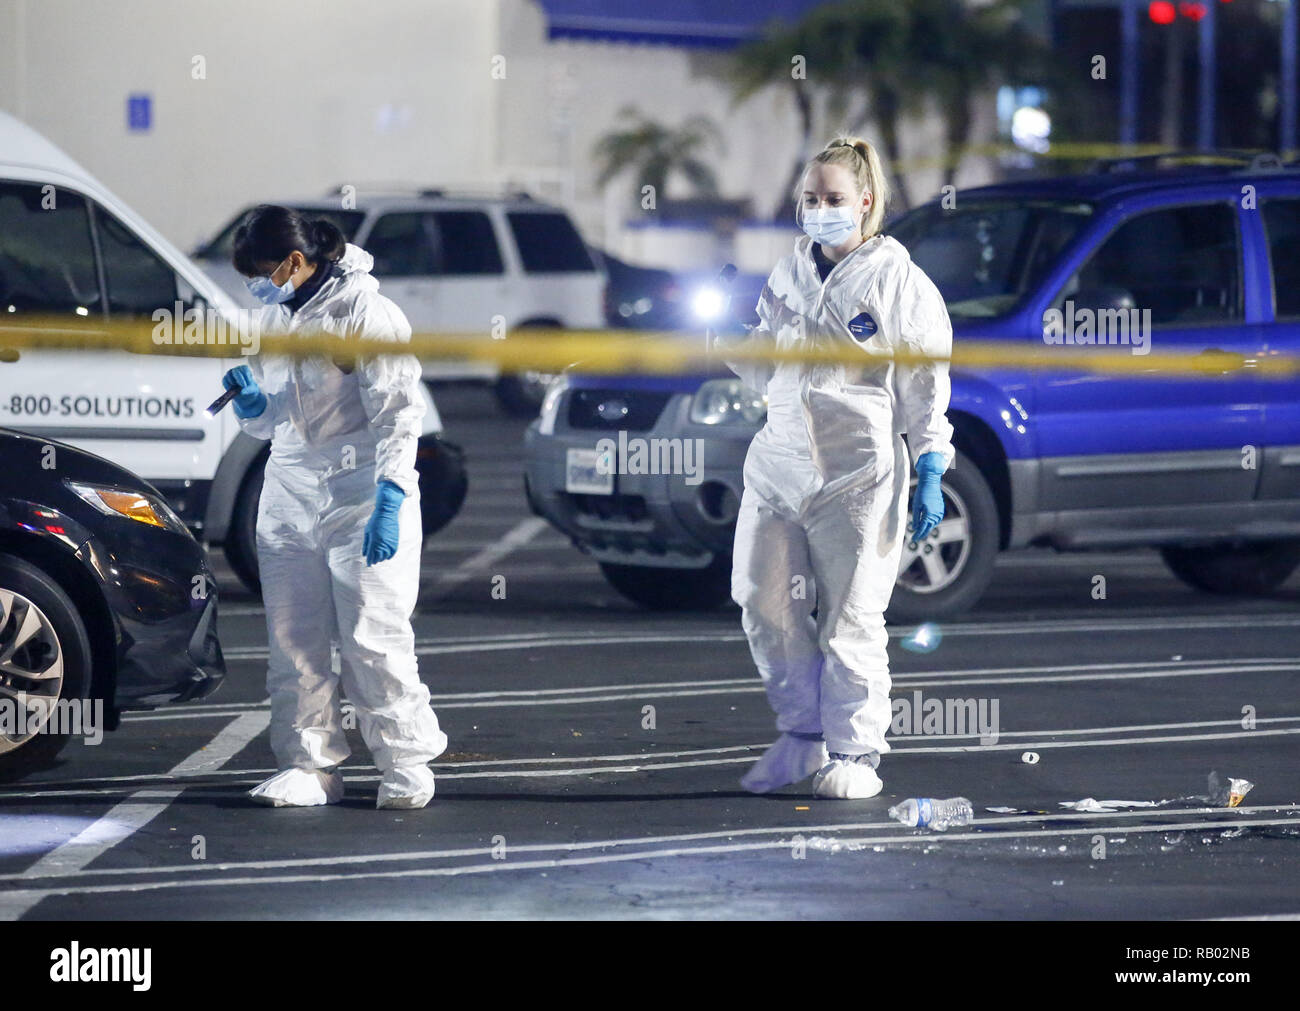 Los Angeles, California, USA. 5th Jan, 2019. Police officers and investigators work the scene after a fatal shooting in Torrance, California, Saturday, Jan. 5, 2019. Three people died in a shooting at a bowling alley in Torrance and four others were injured, authorities said. Credit: Ringo Chiu/ZUMA Wire/Alamy Live News - Stock Image